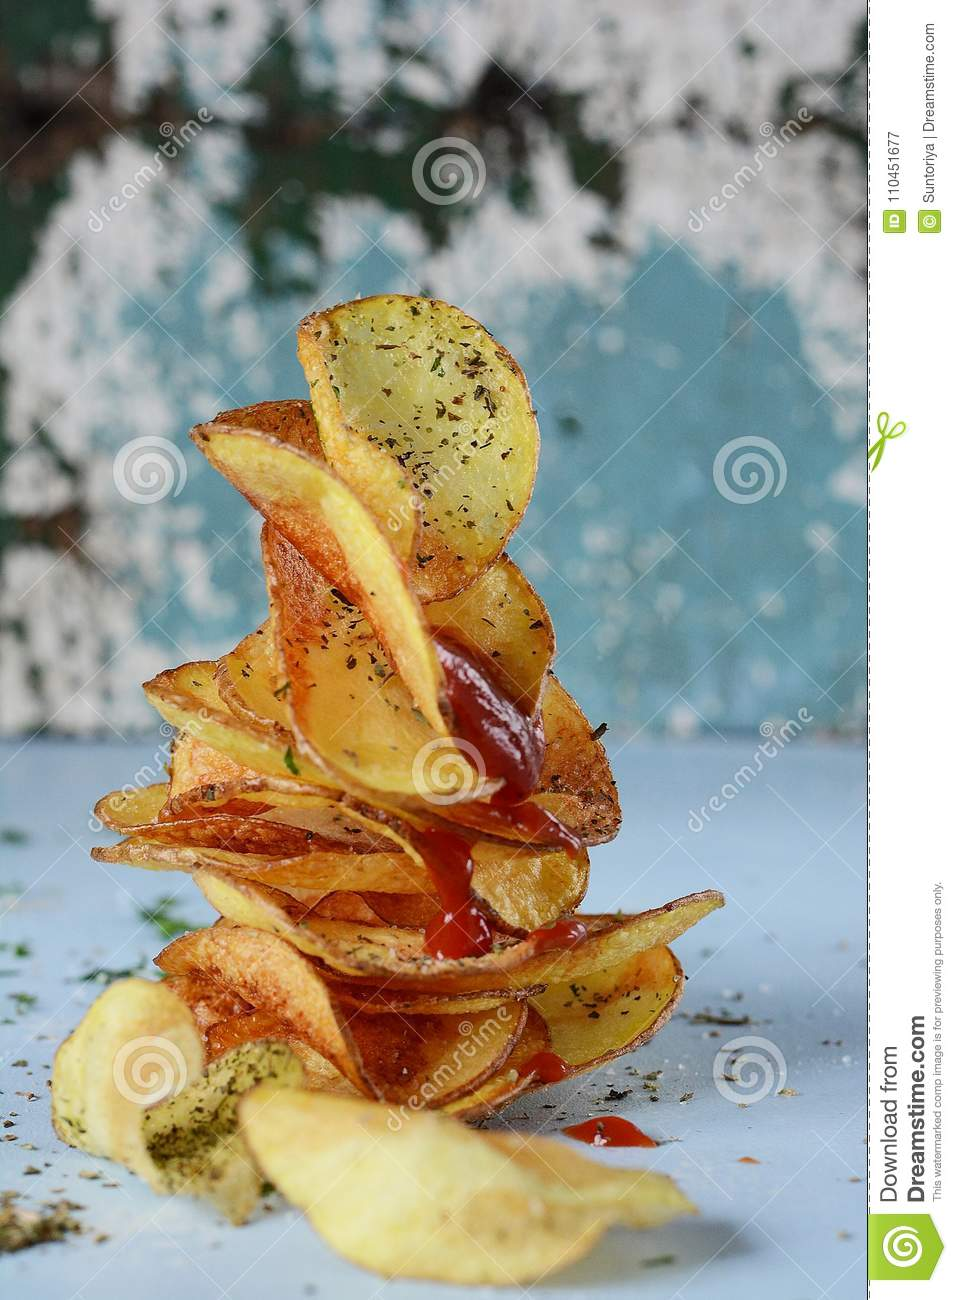 How many calories in fried potatoes